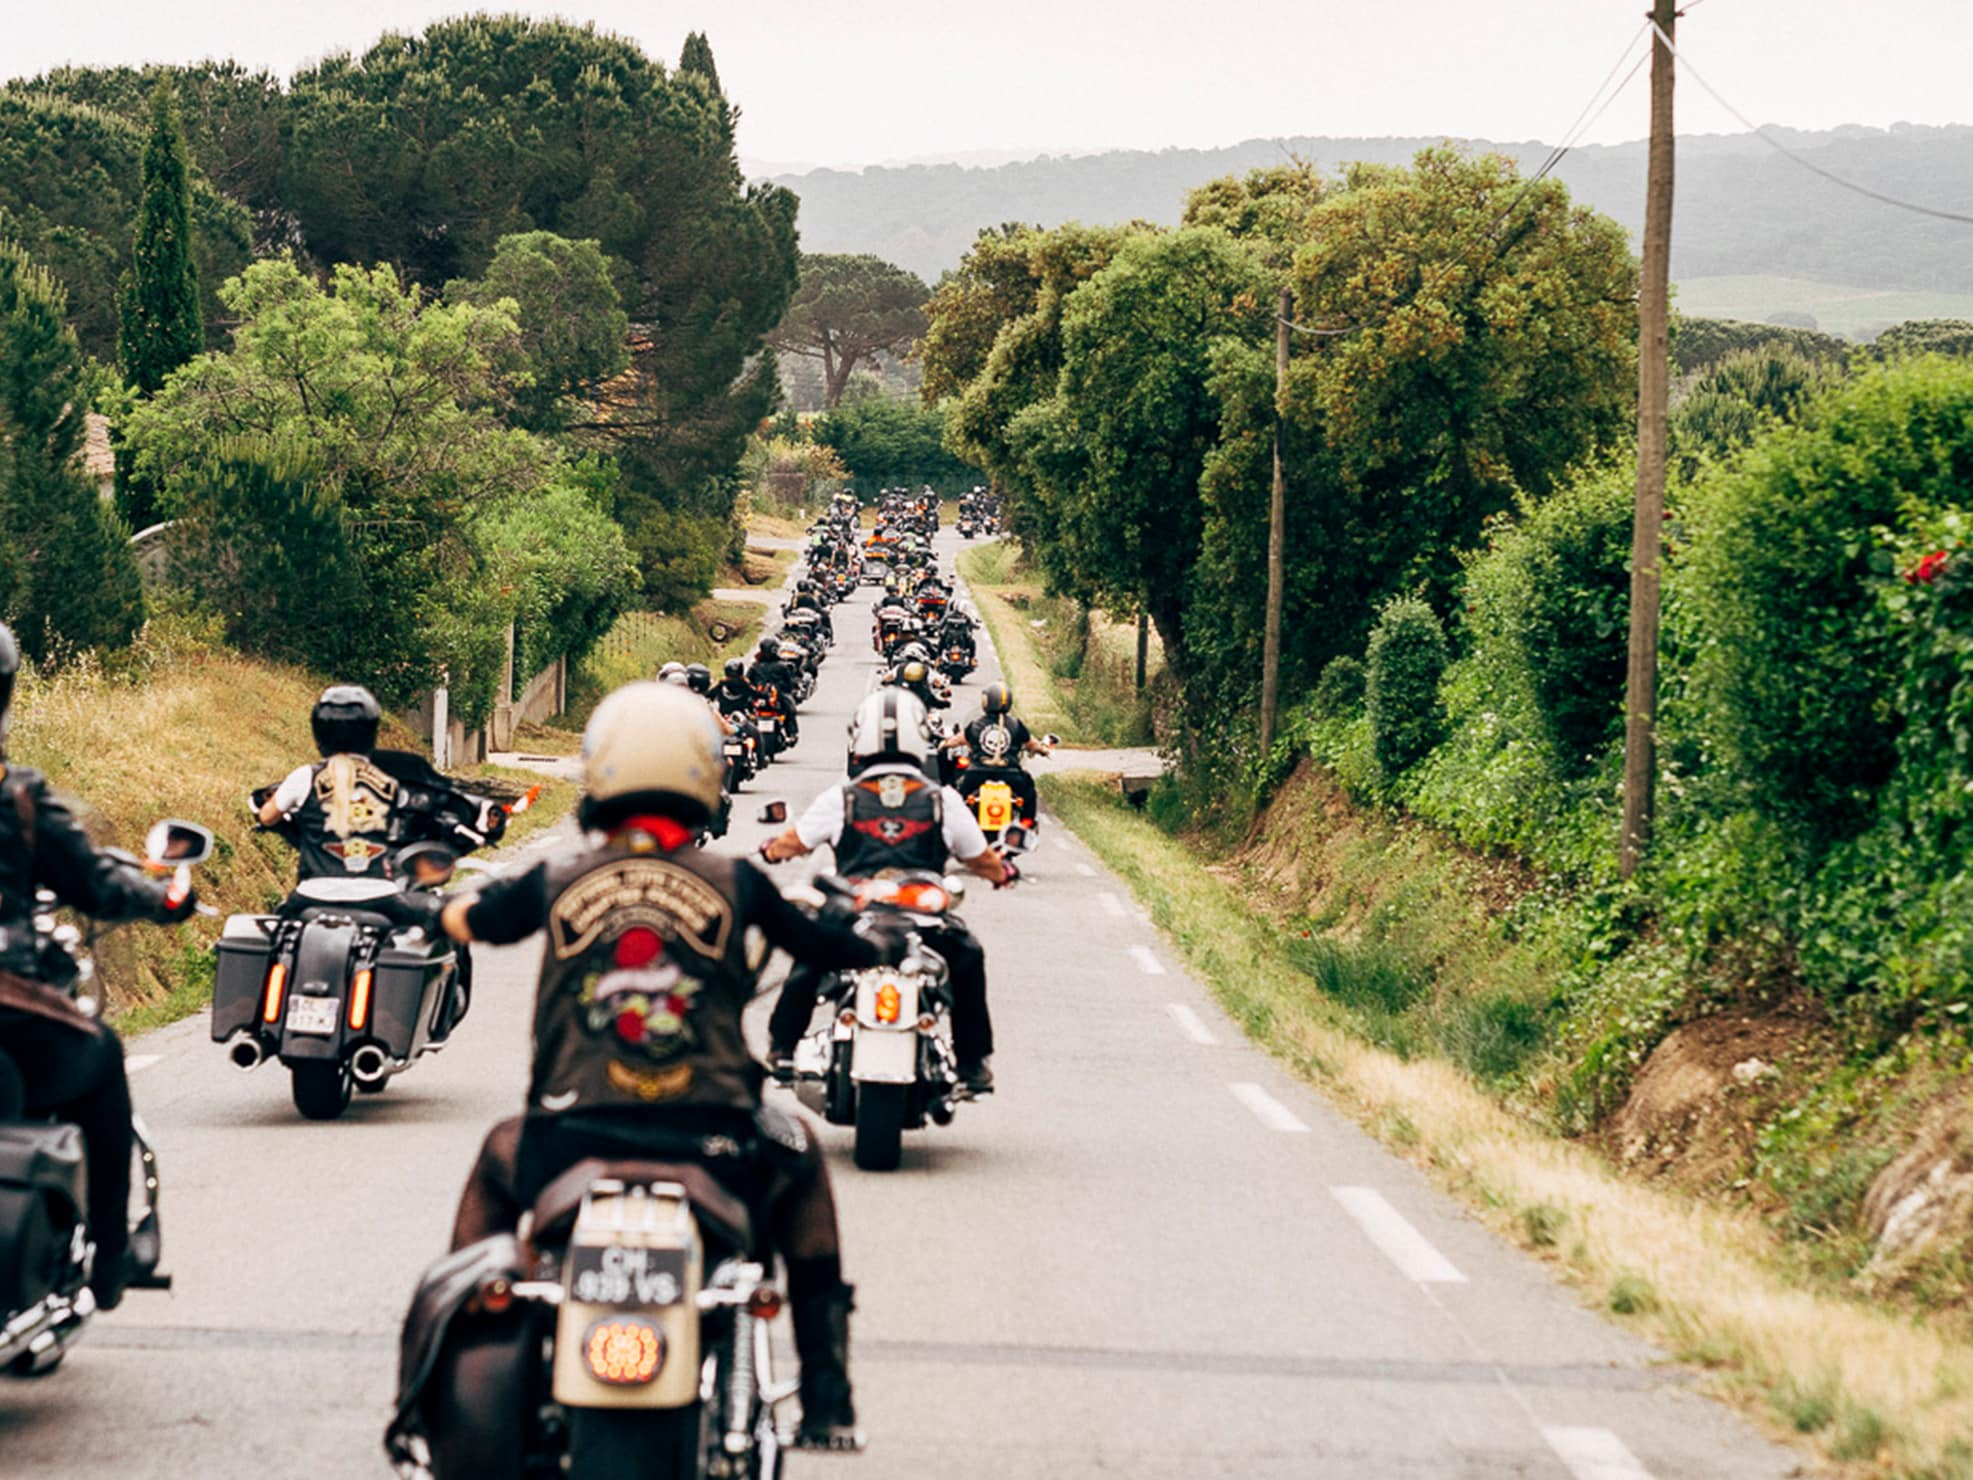 Men Participating in a Harley-Davidson Rally